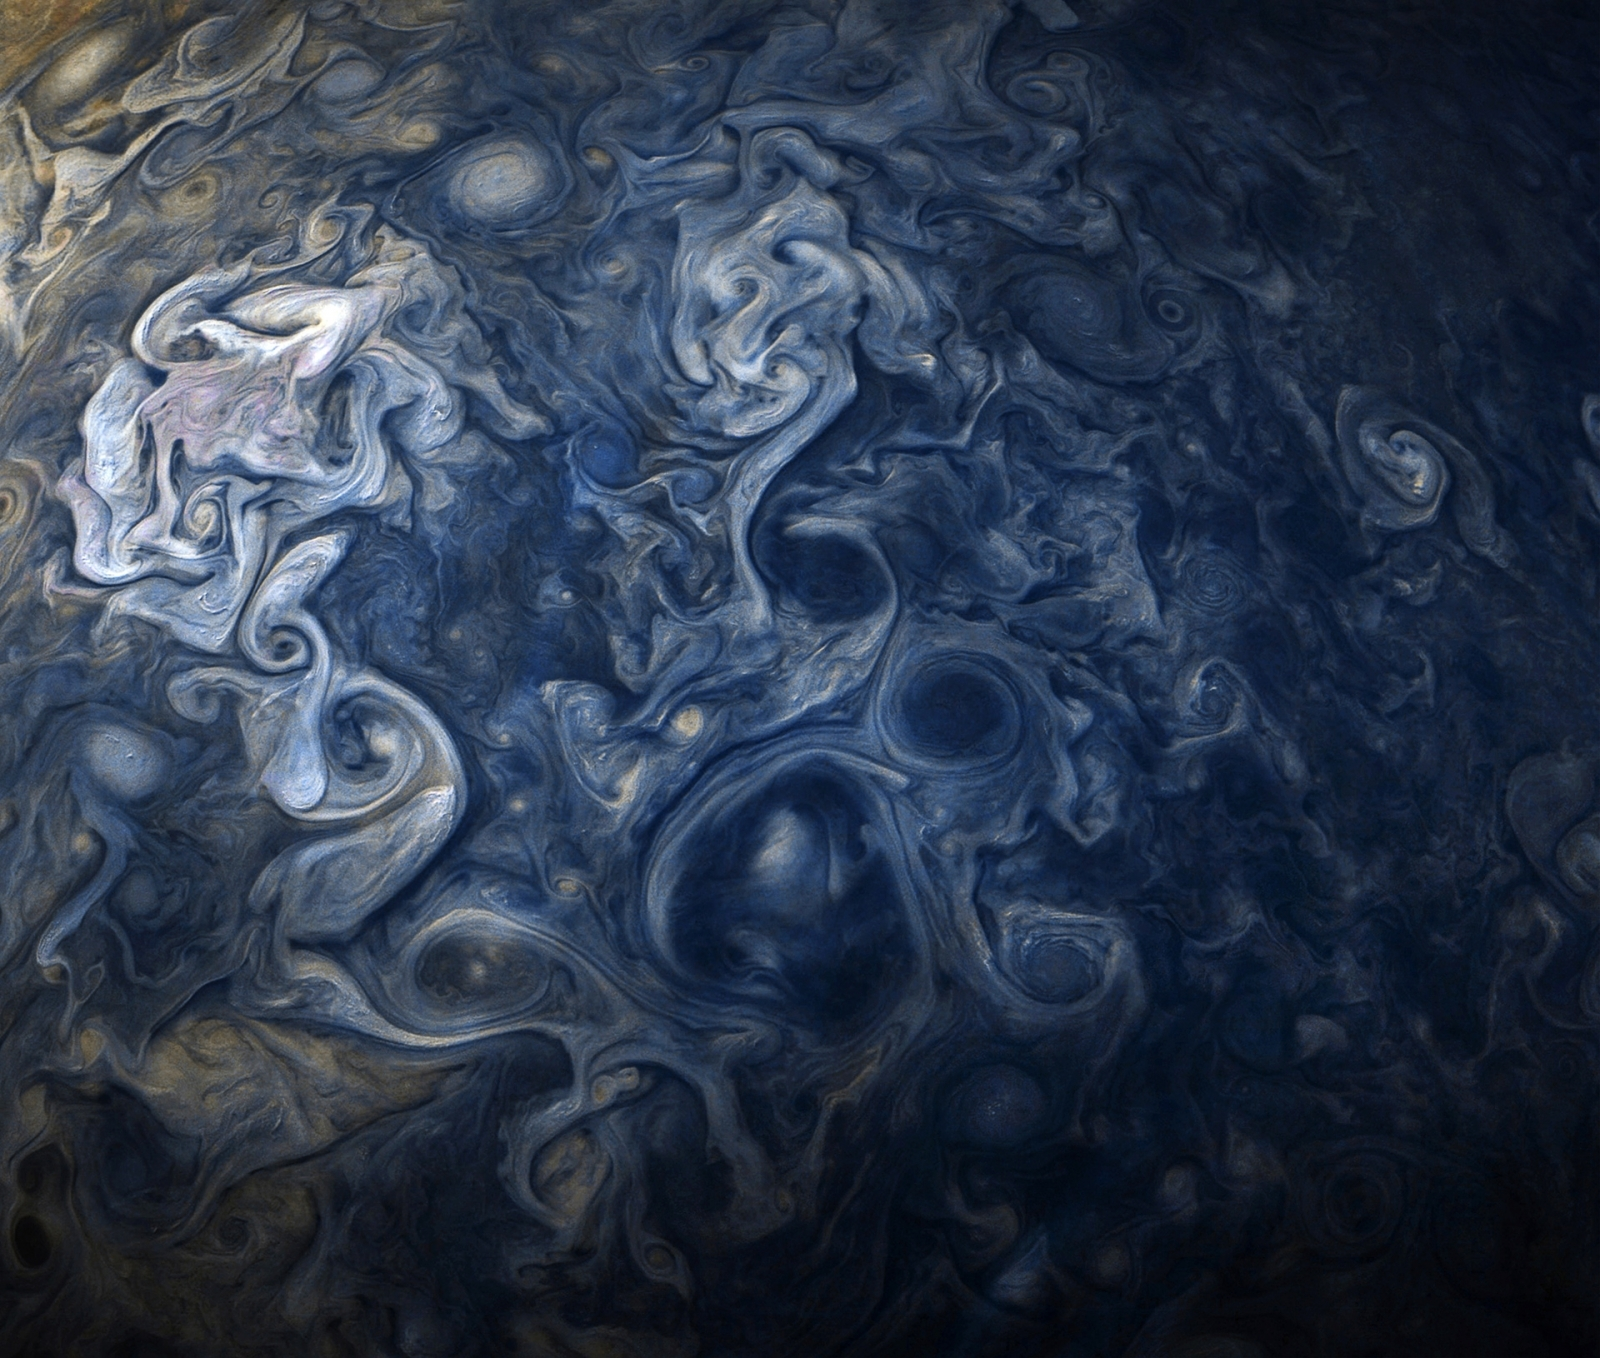 Jupiter blues: Nasa's Juno captures swirling Jovian clouds in jaw-dropping image